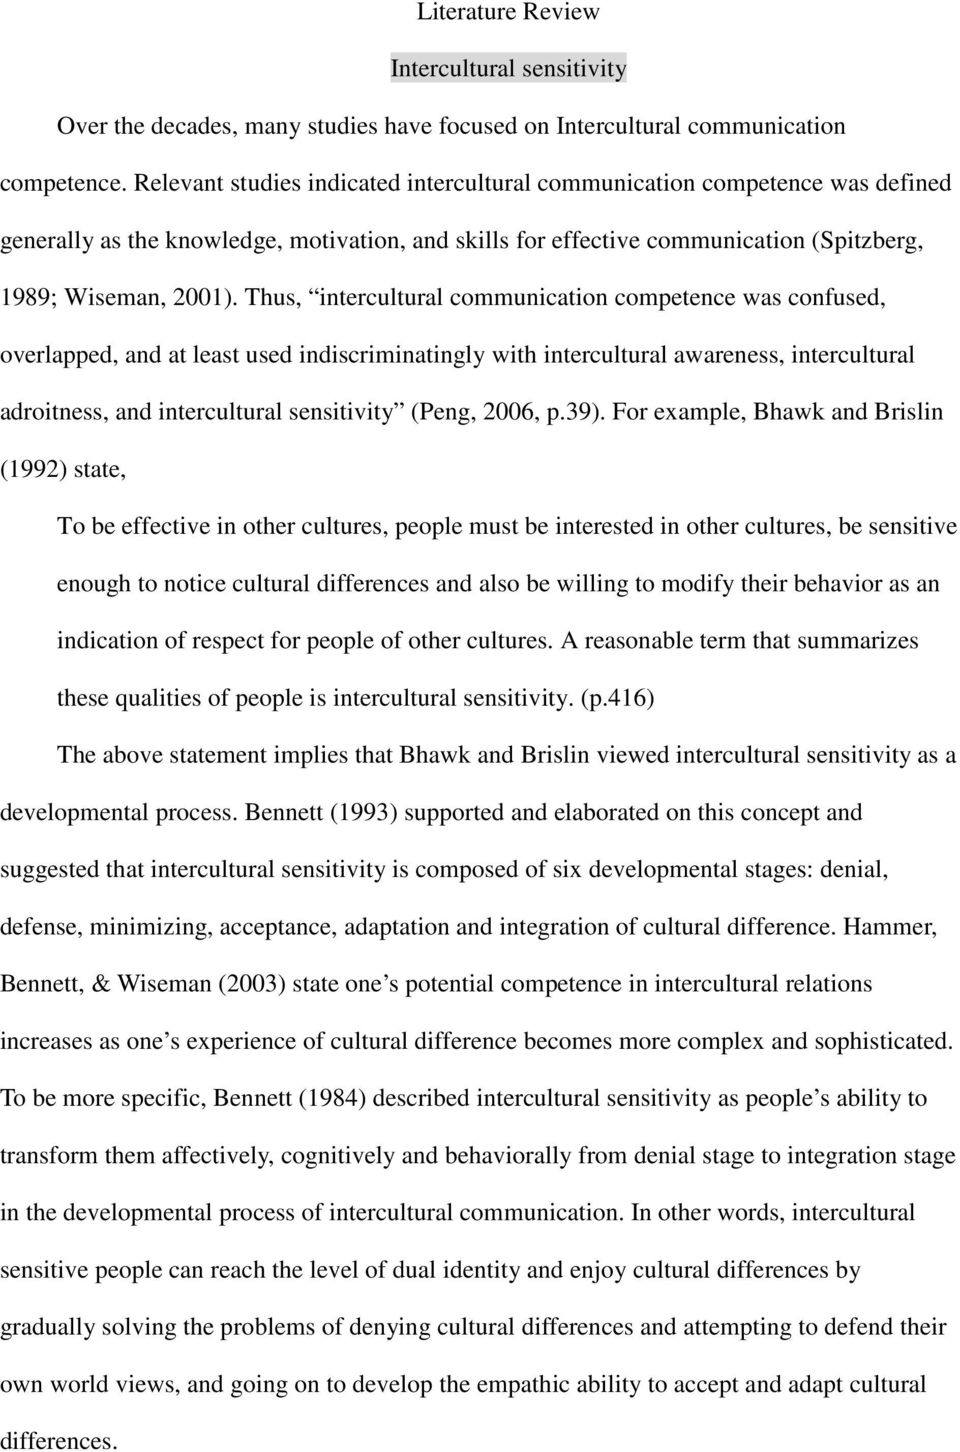 Thus, intercultural communication competence was confused, overlapped, and at least used indiscriminatingly with intercultural awareness, intercultural adroitness, and intercultural sensitivity